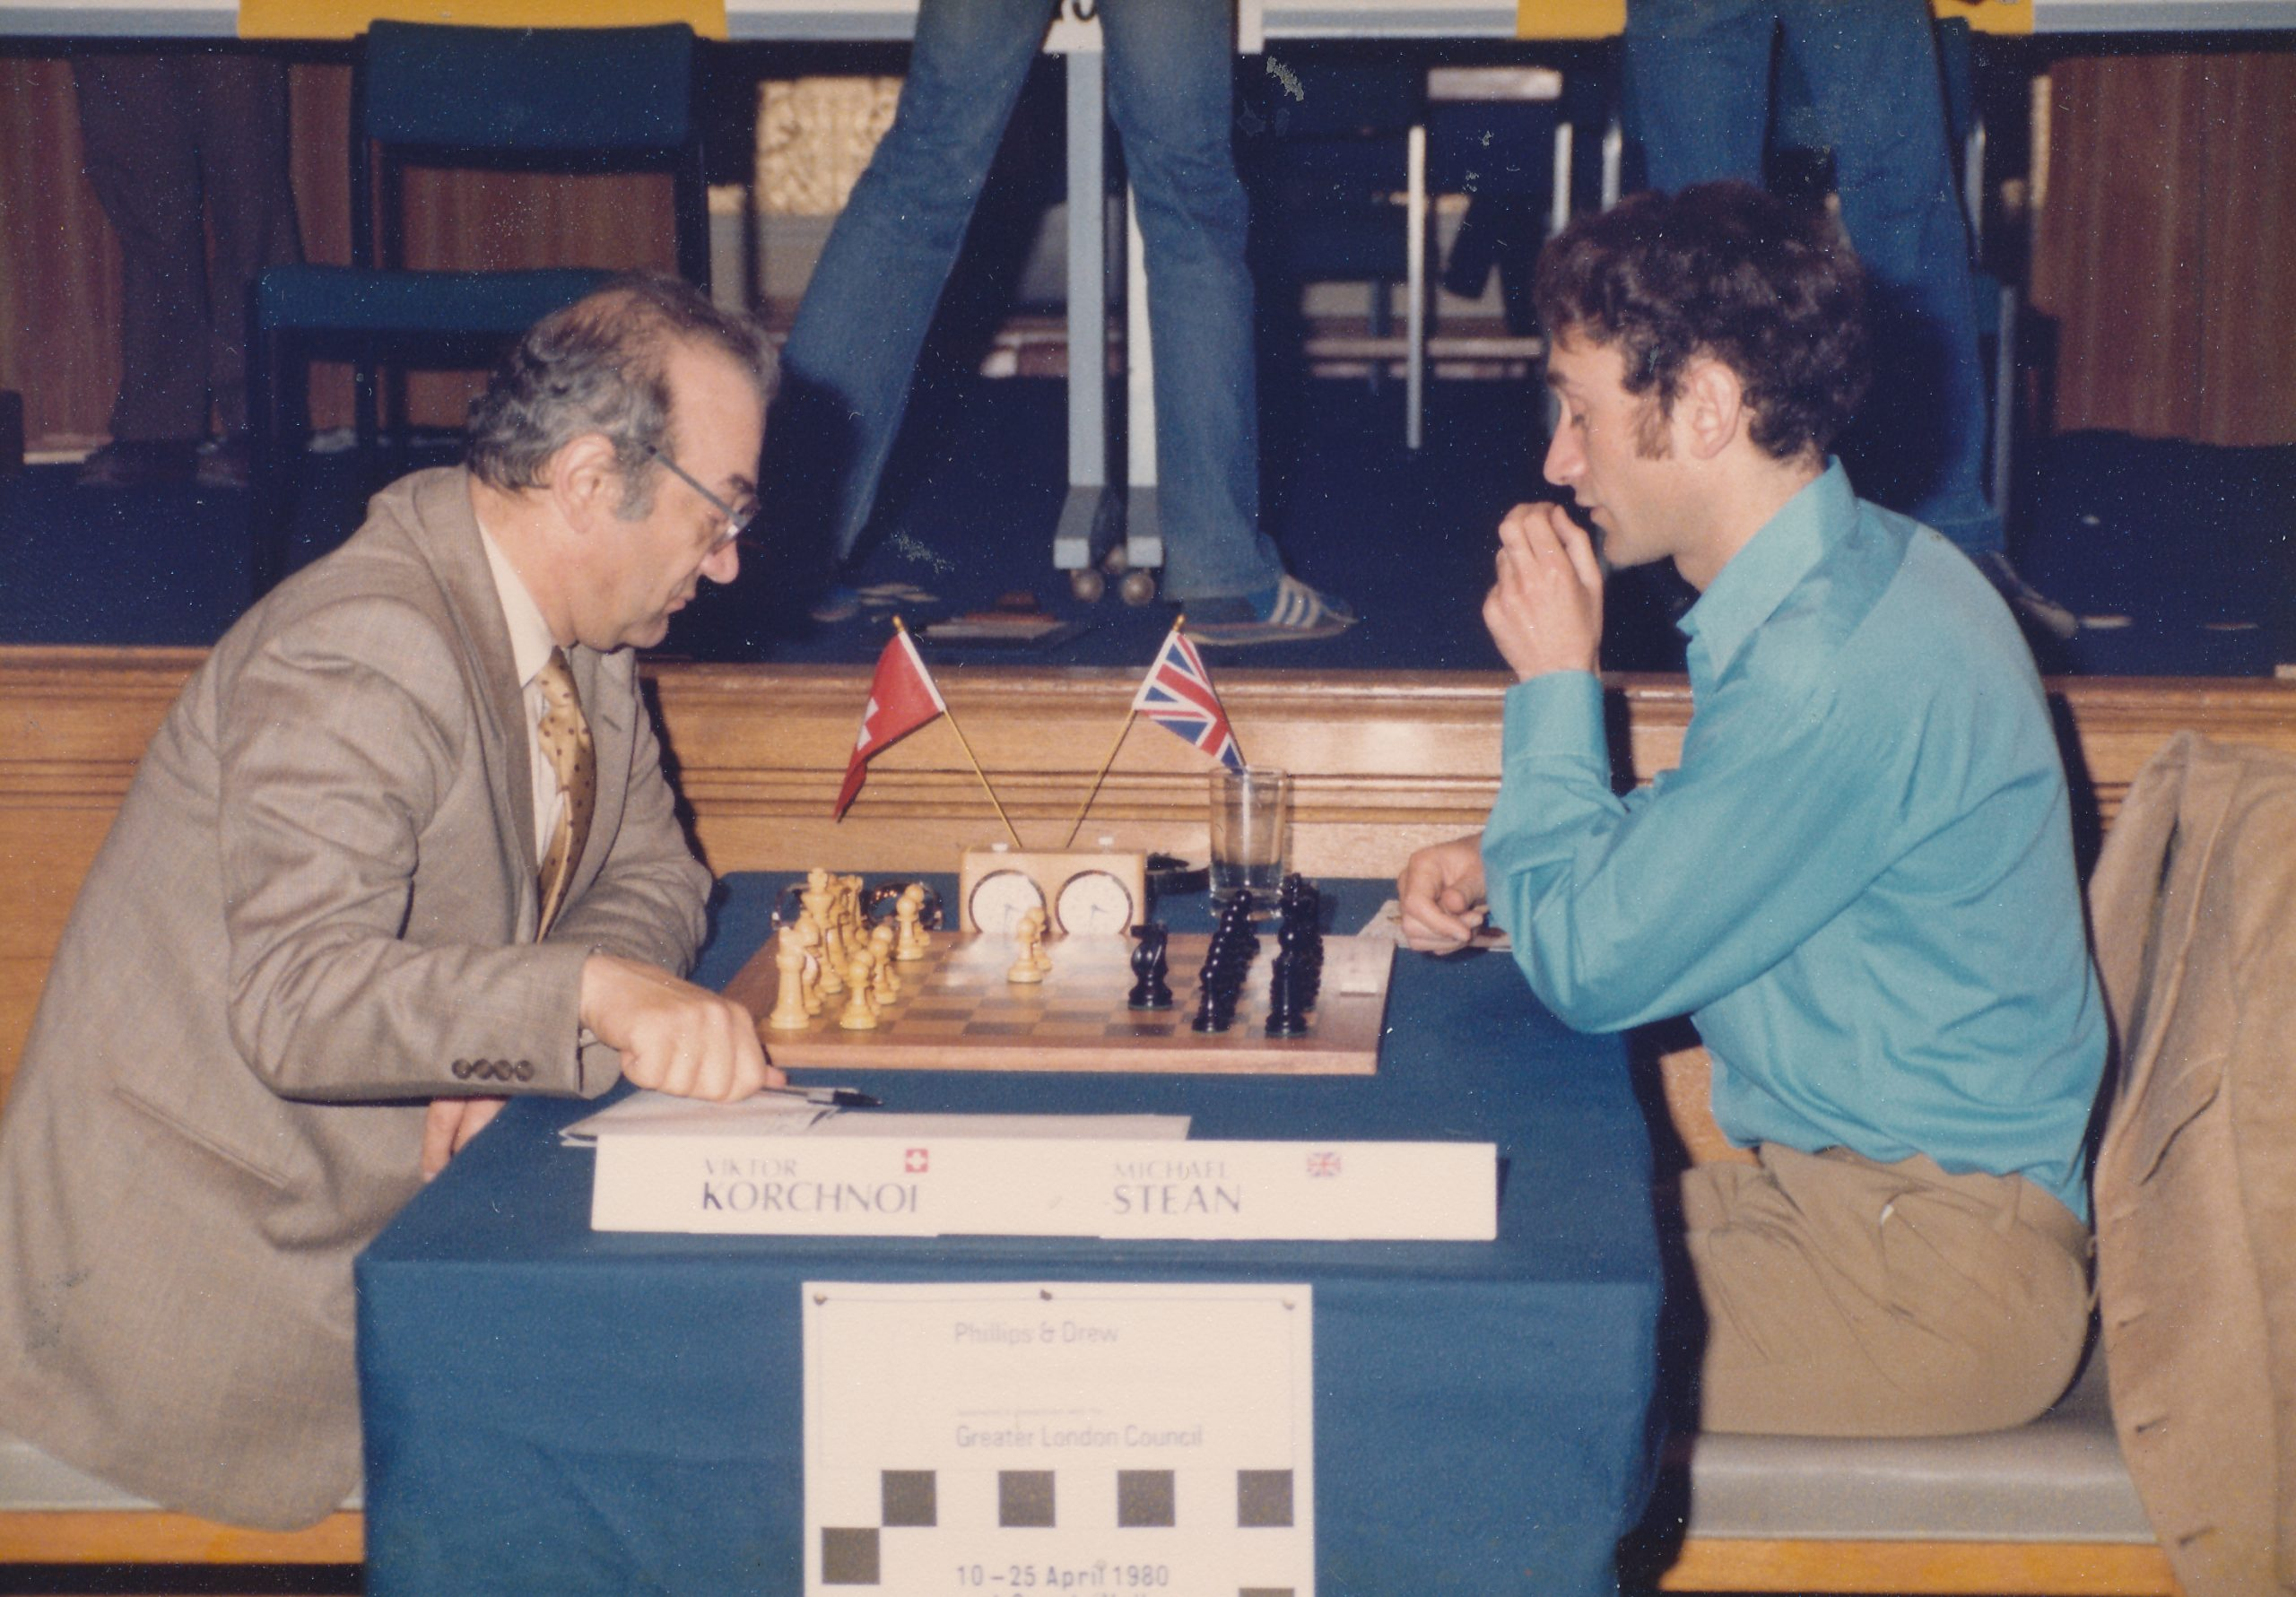 Korchnoi vs Stean at the Philips & Drew Masters of 1980. The game was drawn in 19 moves.